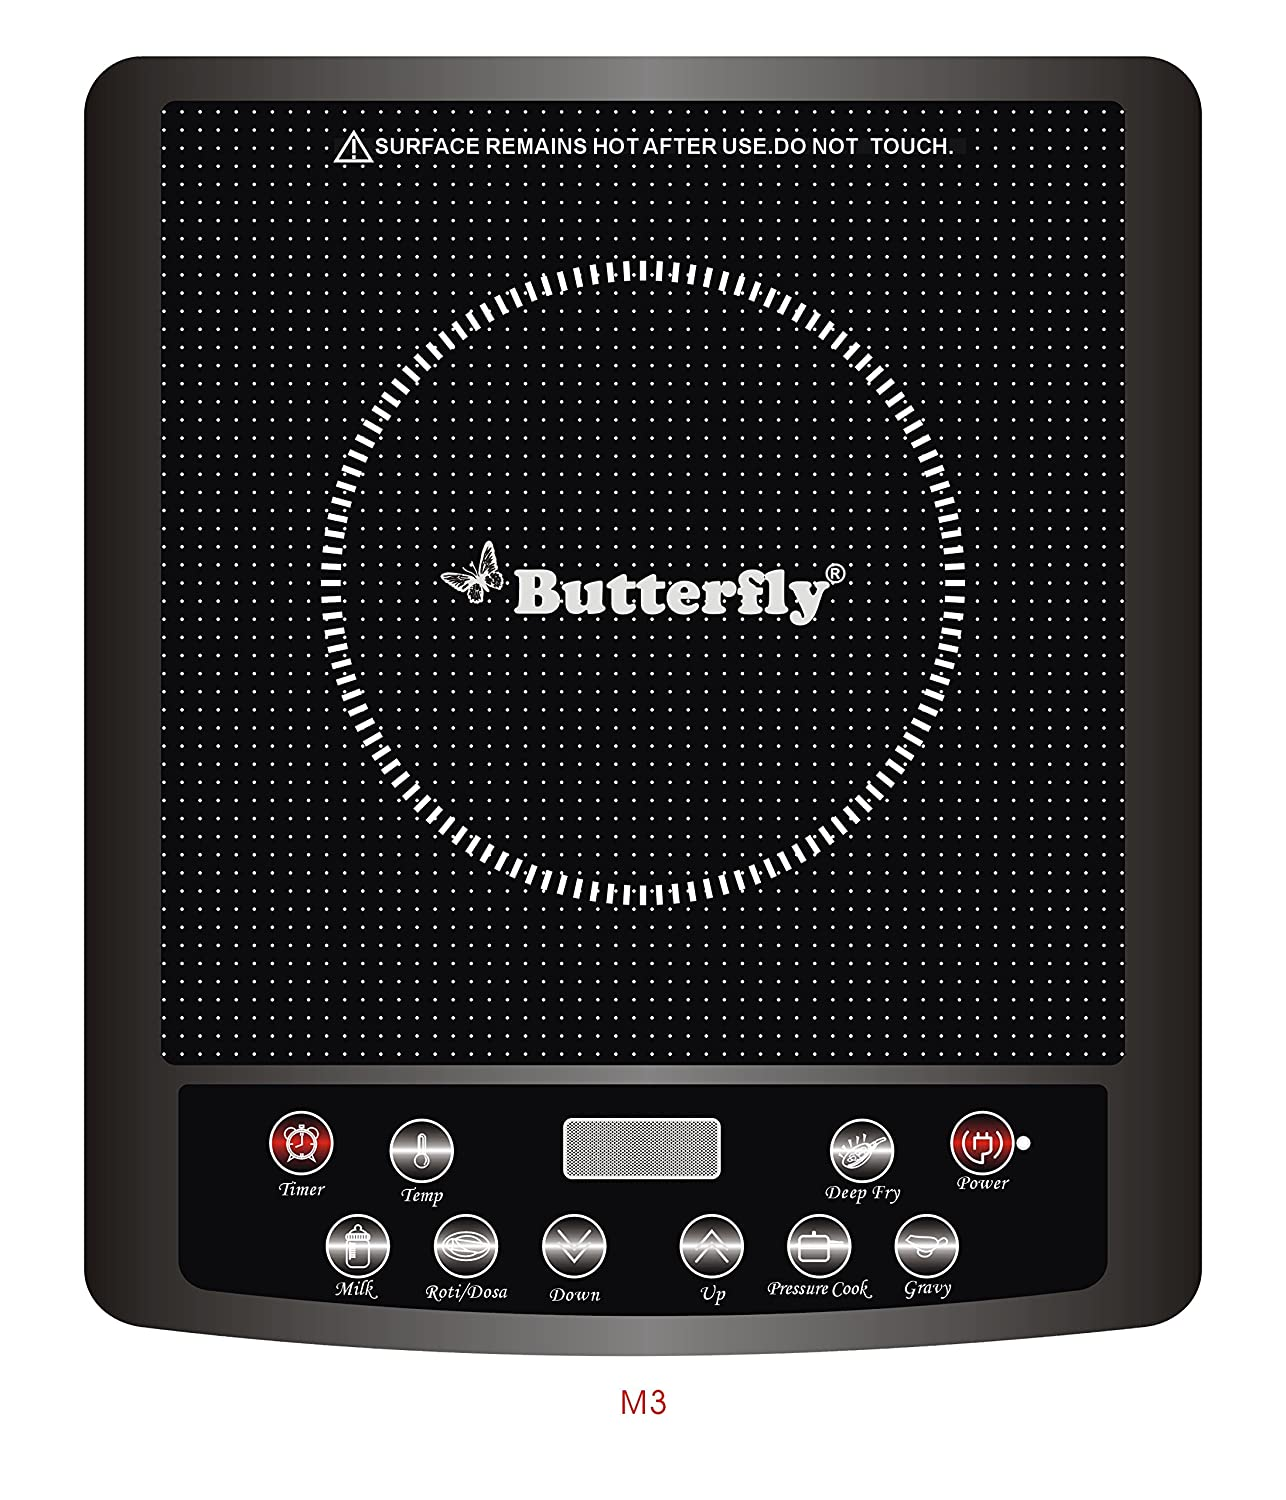 Butterfly Induction Cooktop Image